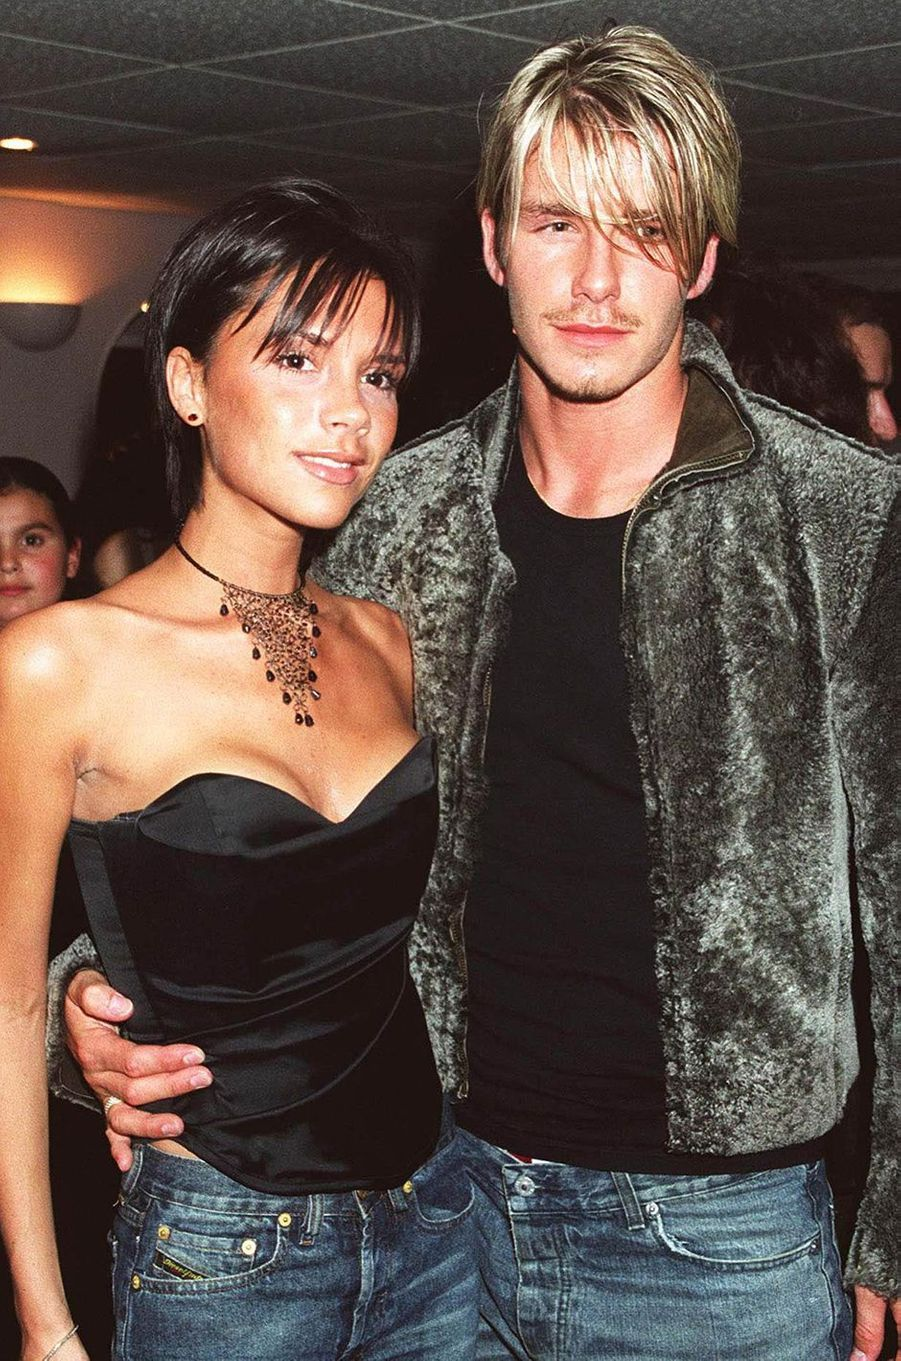 Victoria et David Beckham - ici en septembre 1999 dans les coulisses d'un concert de Whitney Houston à Londres